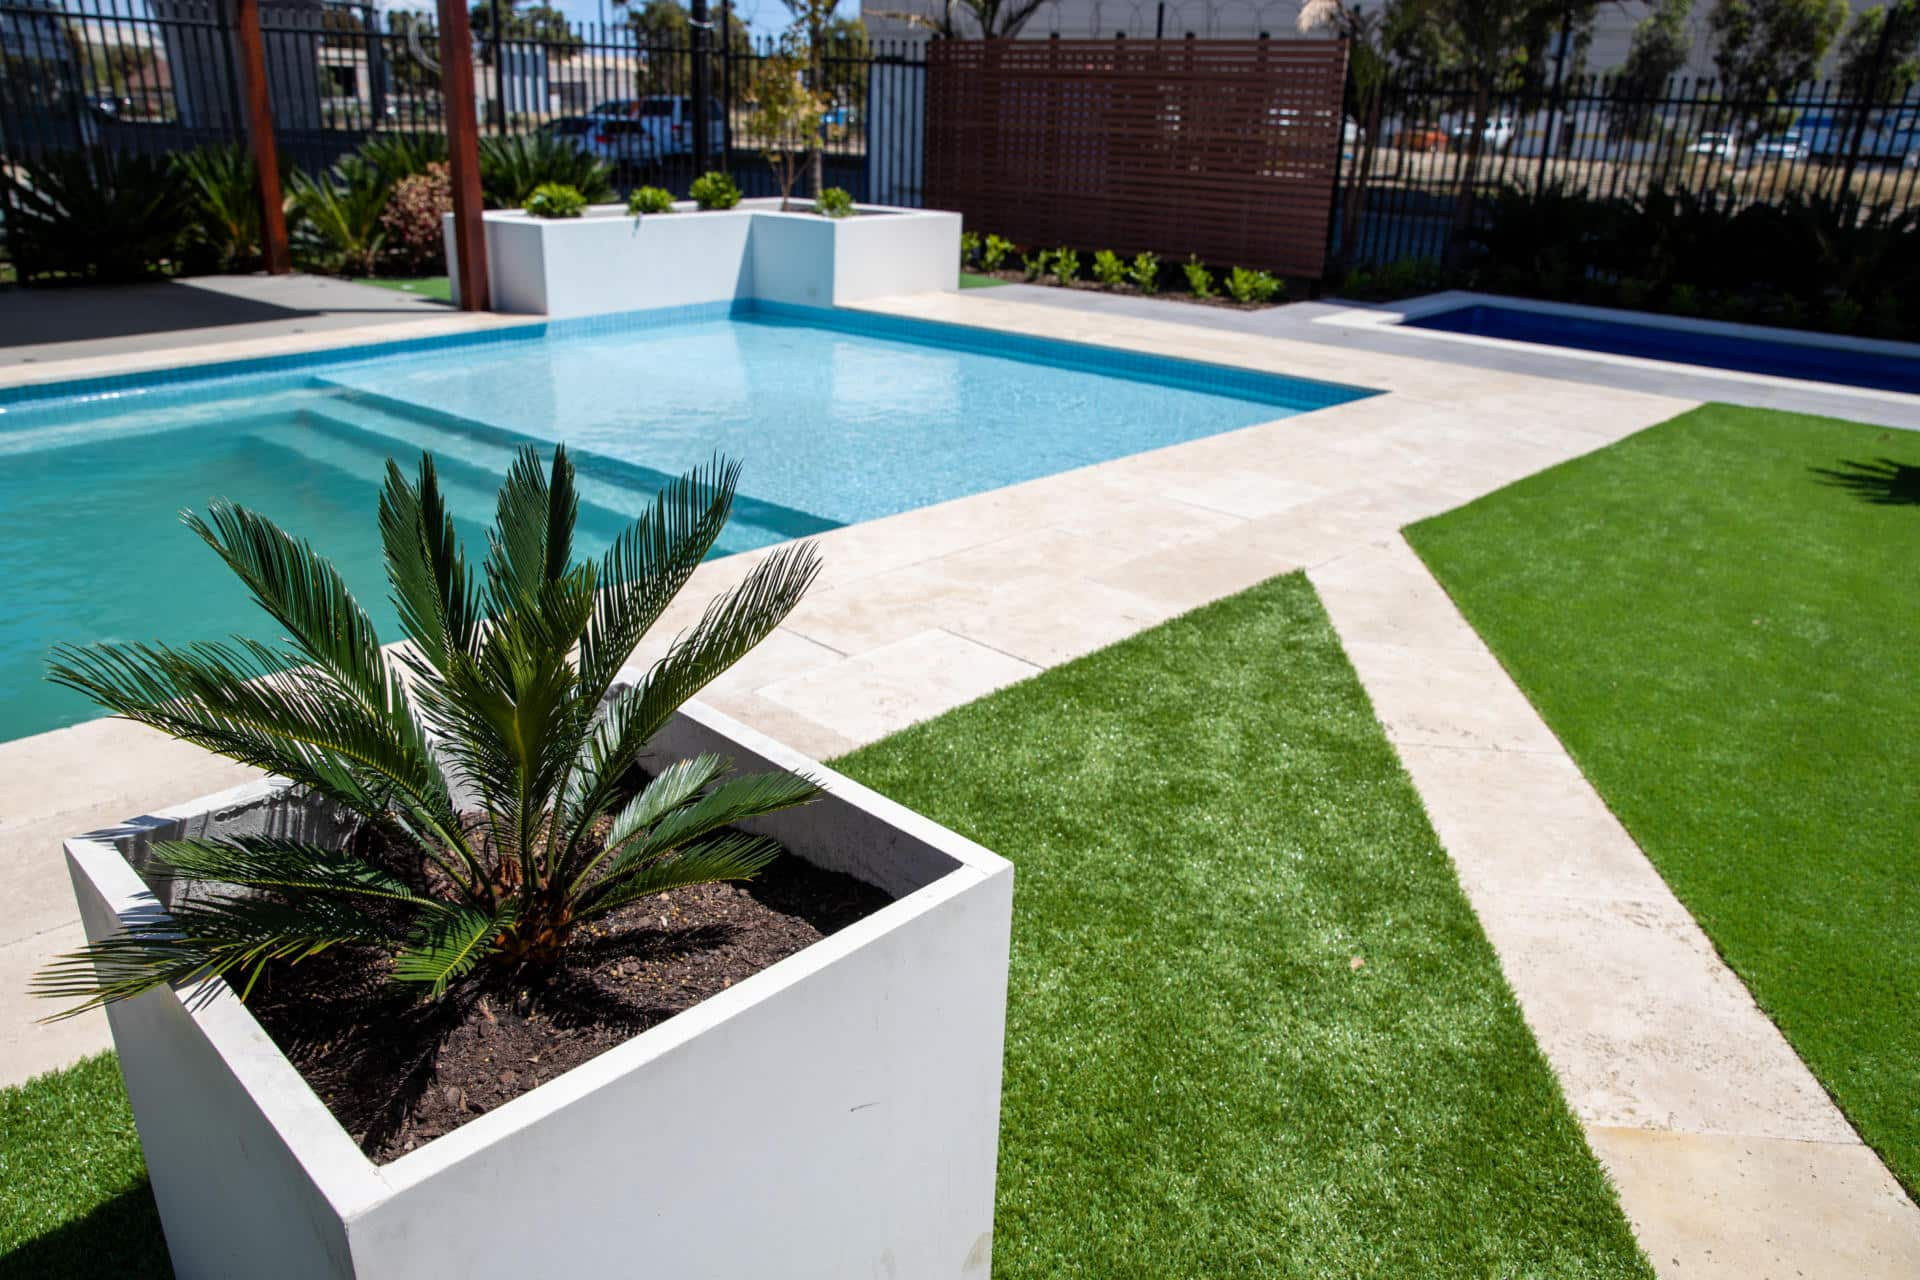 Australian Outdoor Living unveils new outdoor display centre with Super Saturday specials - A bespoke concrete pool would be a stunning addition to your backyard, Australian Outdoor Living.